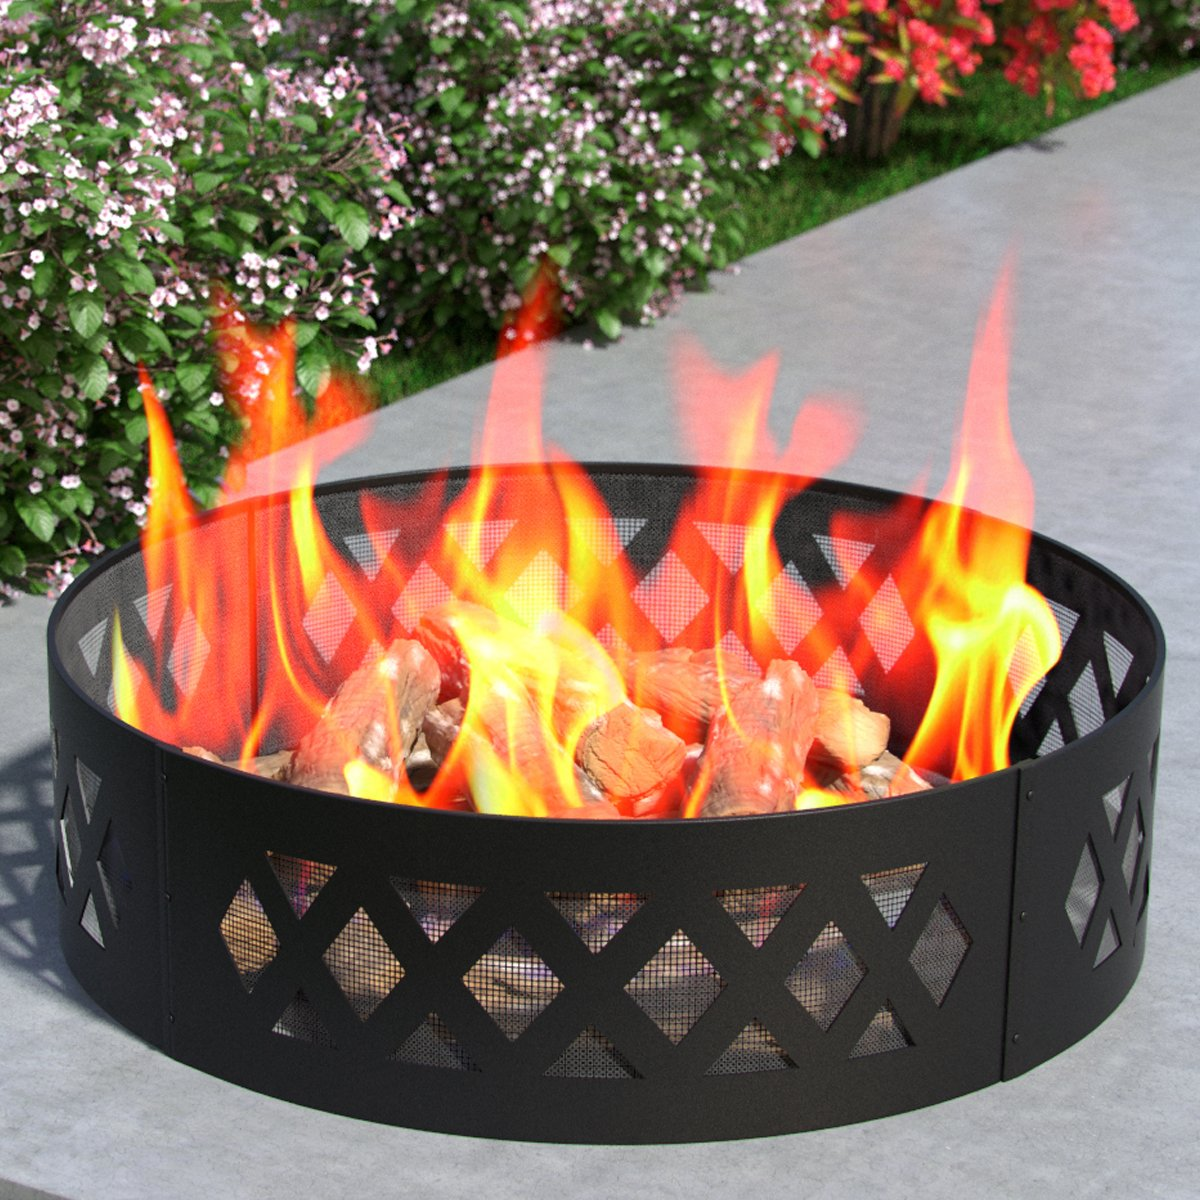 Heavy Duty Crossweave 38 Inch Backyard Garden Home Running Horse Light Wood Fire Pit Fire Ring. For RV, Camping, and Outdoor Fireplace. Similar Firewood Patio Heater, Stove or Firebowl without Propane by Regal Flame